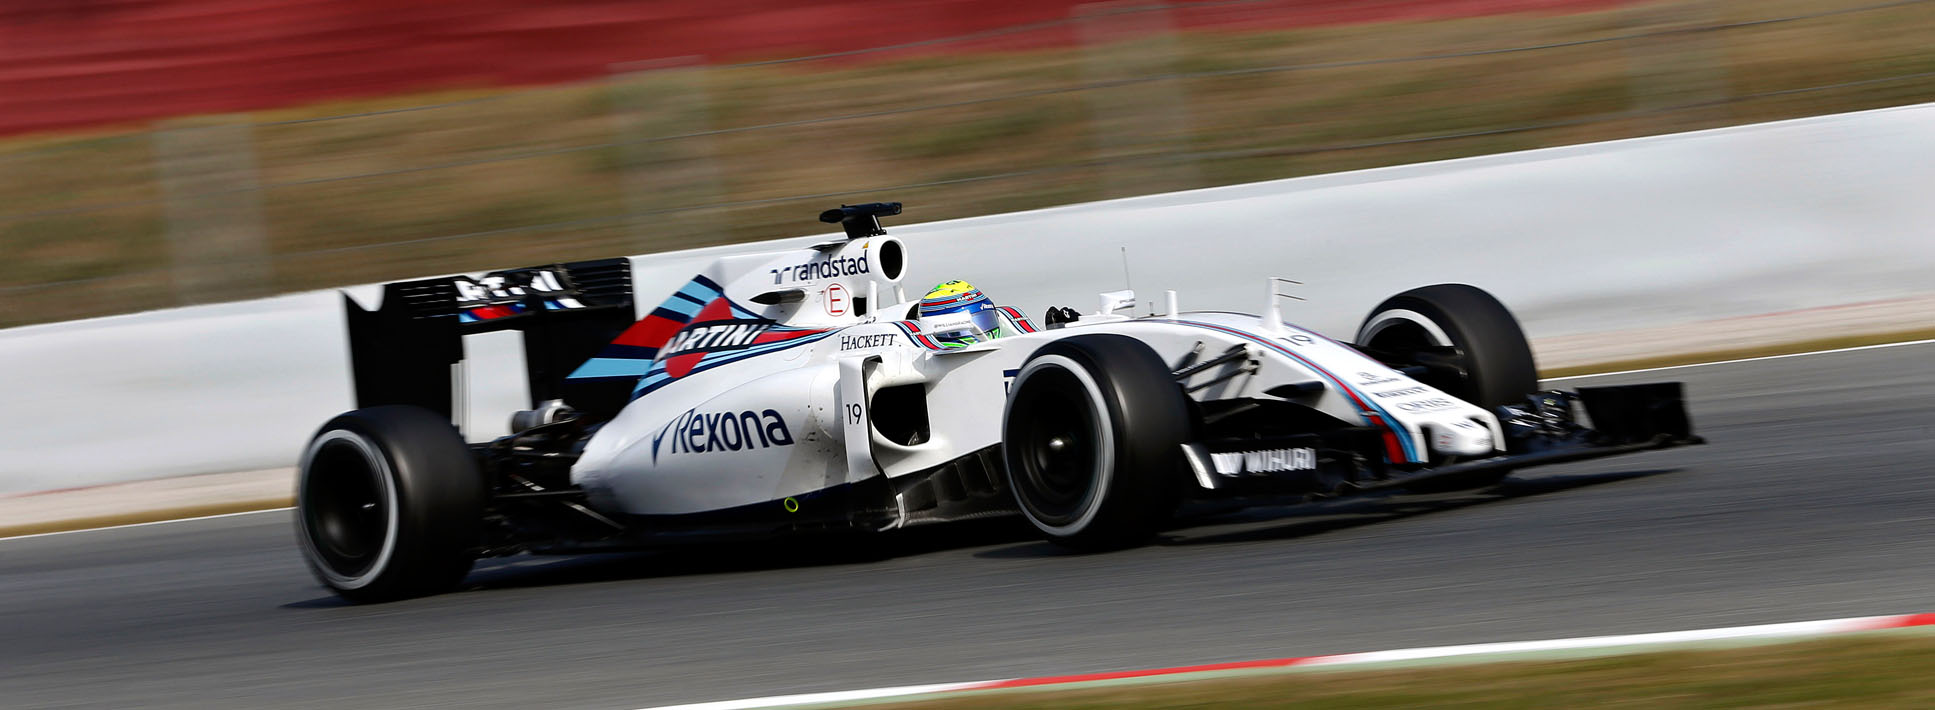 出典:http://www.williamsf1.com/racing/about